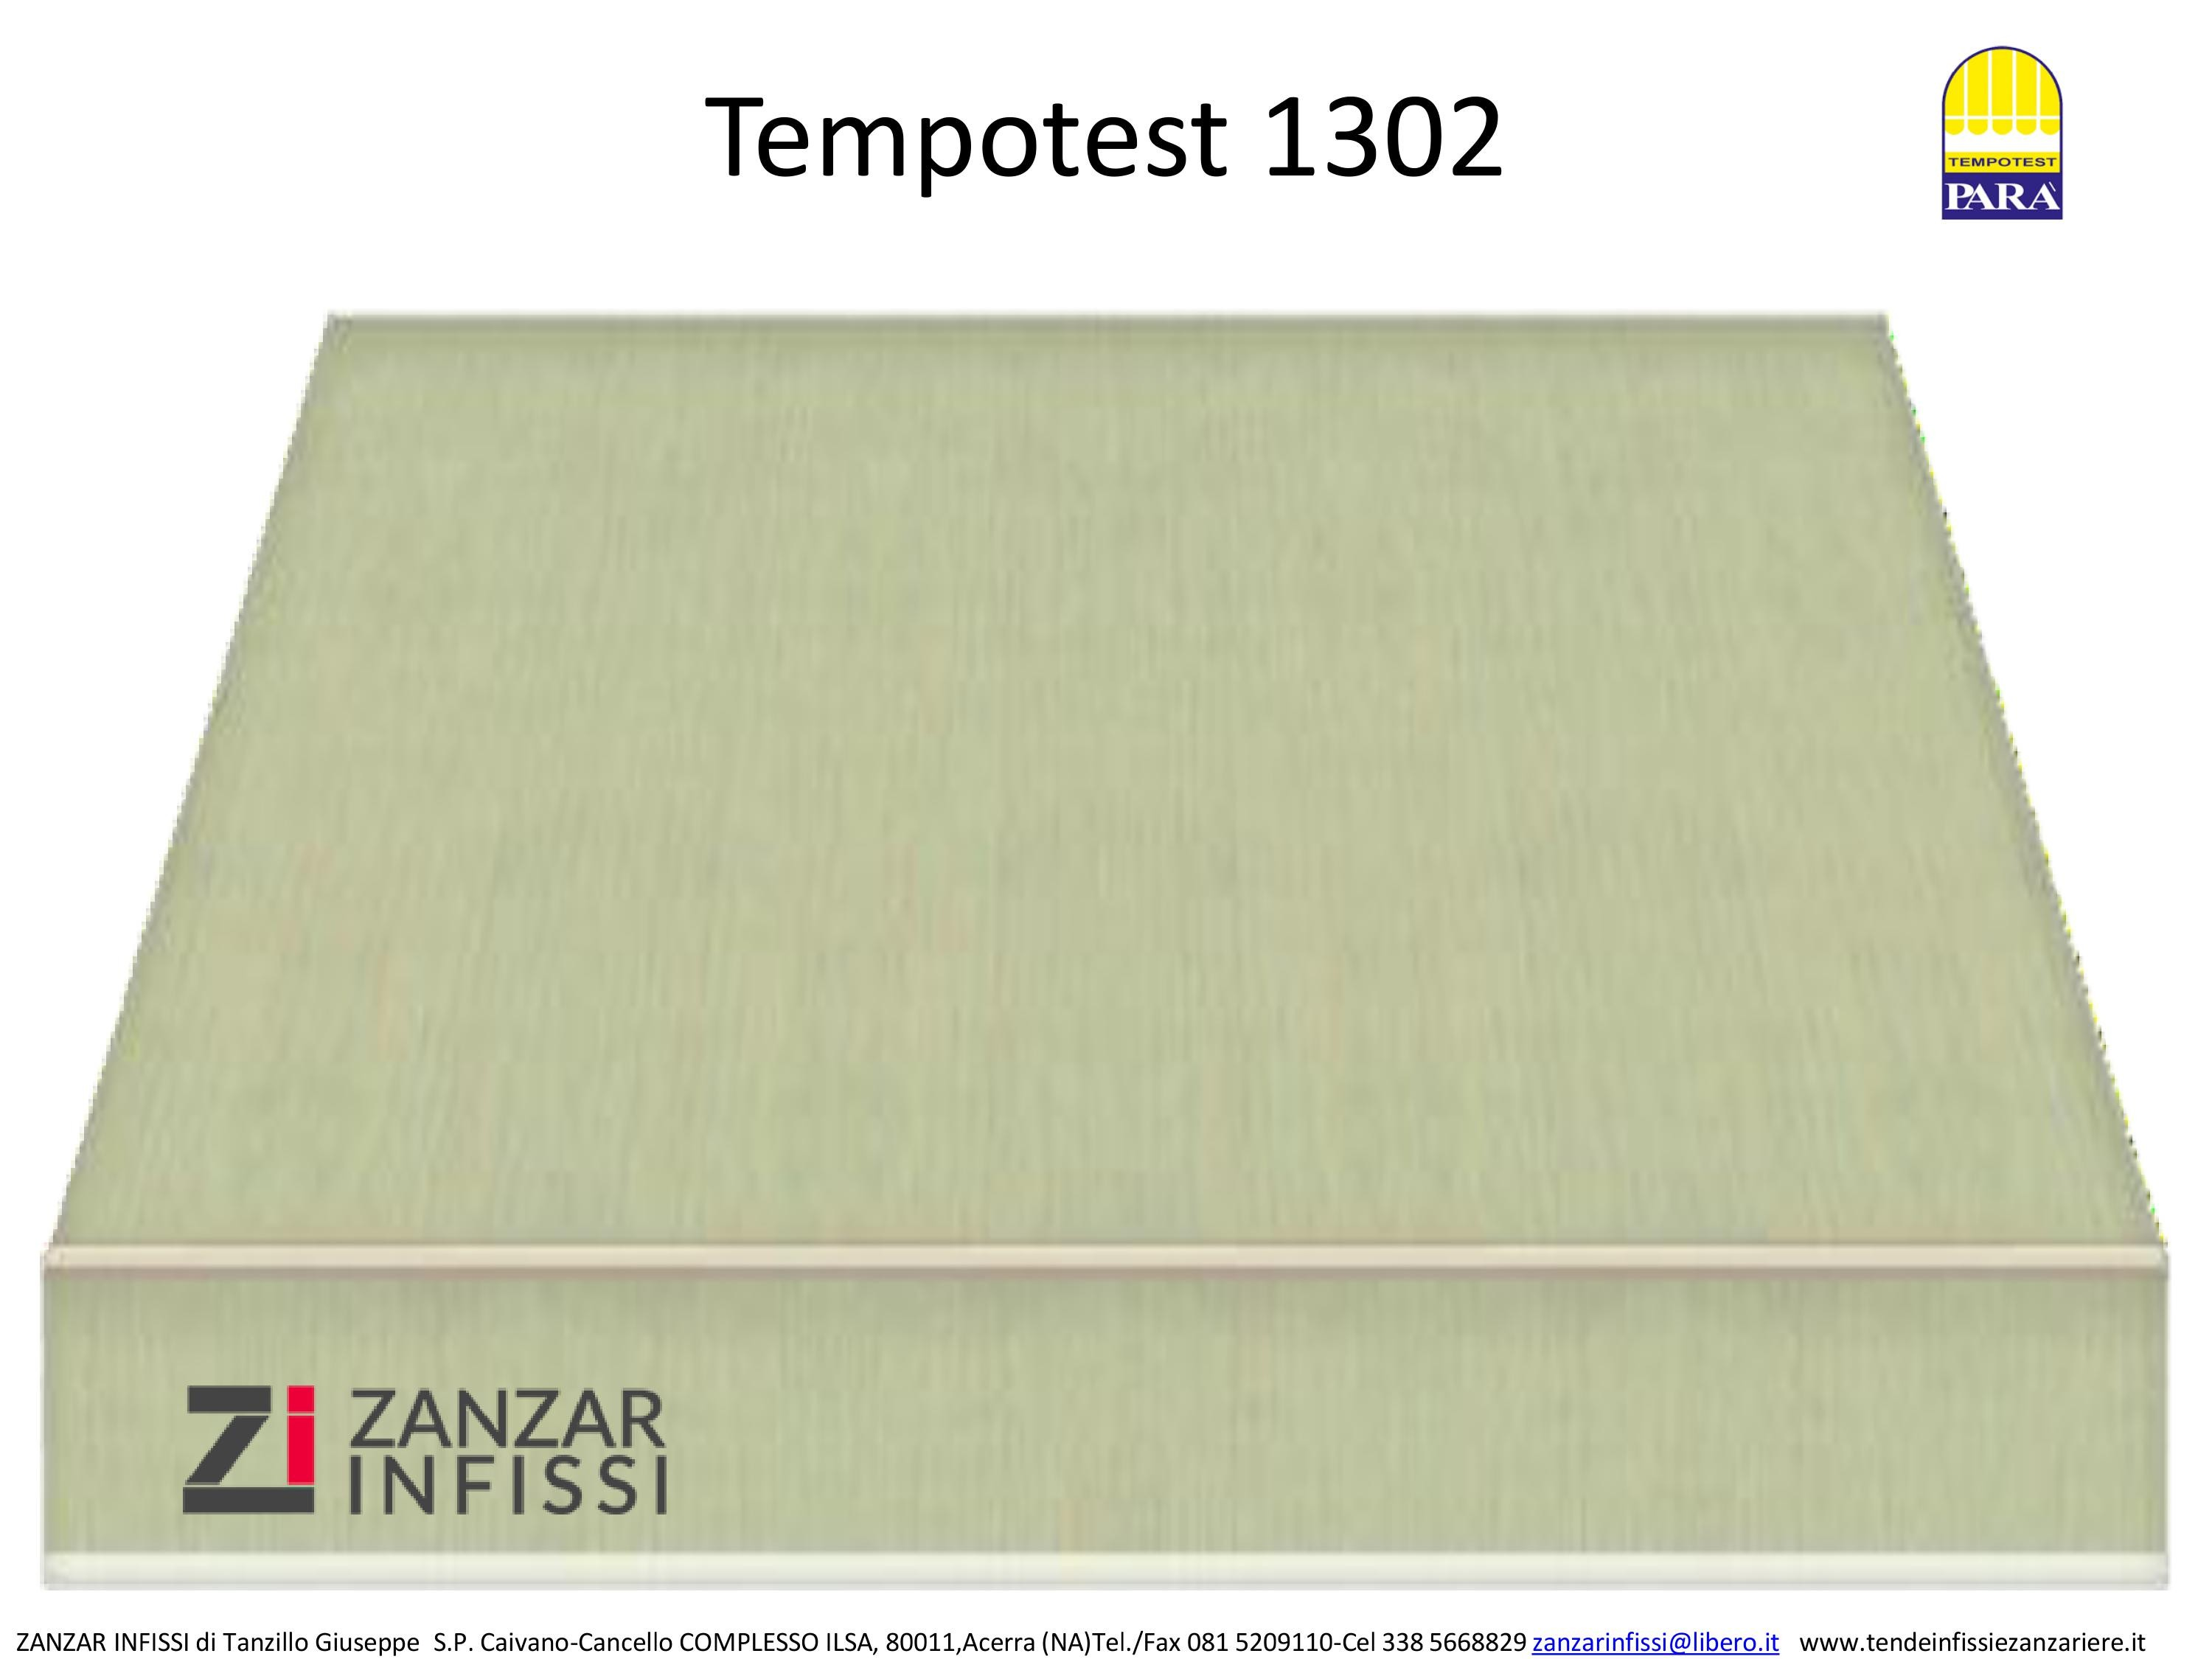 Tempotest 1302